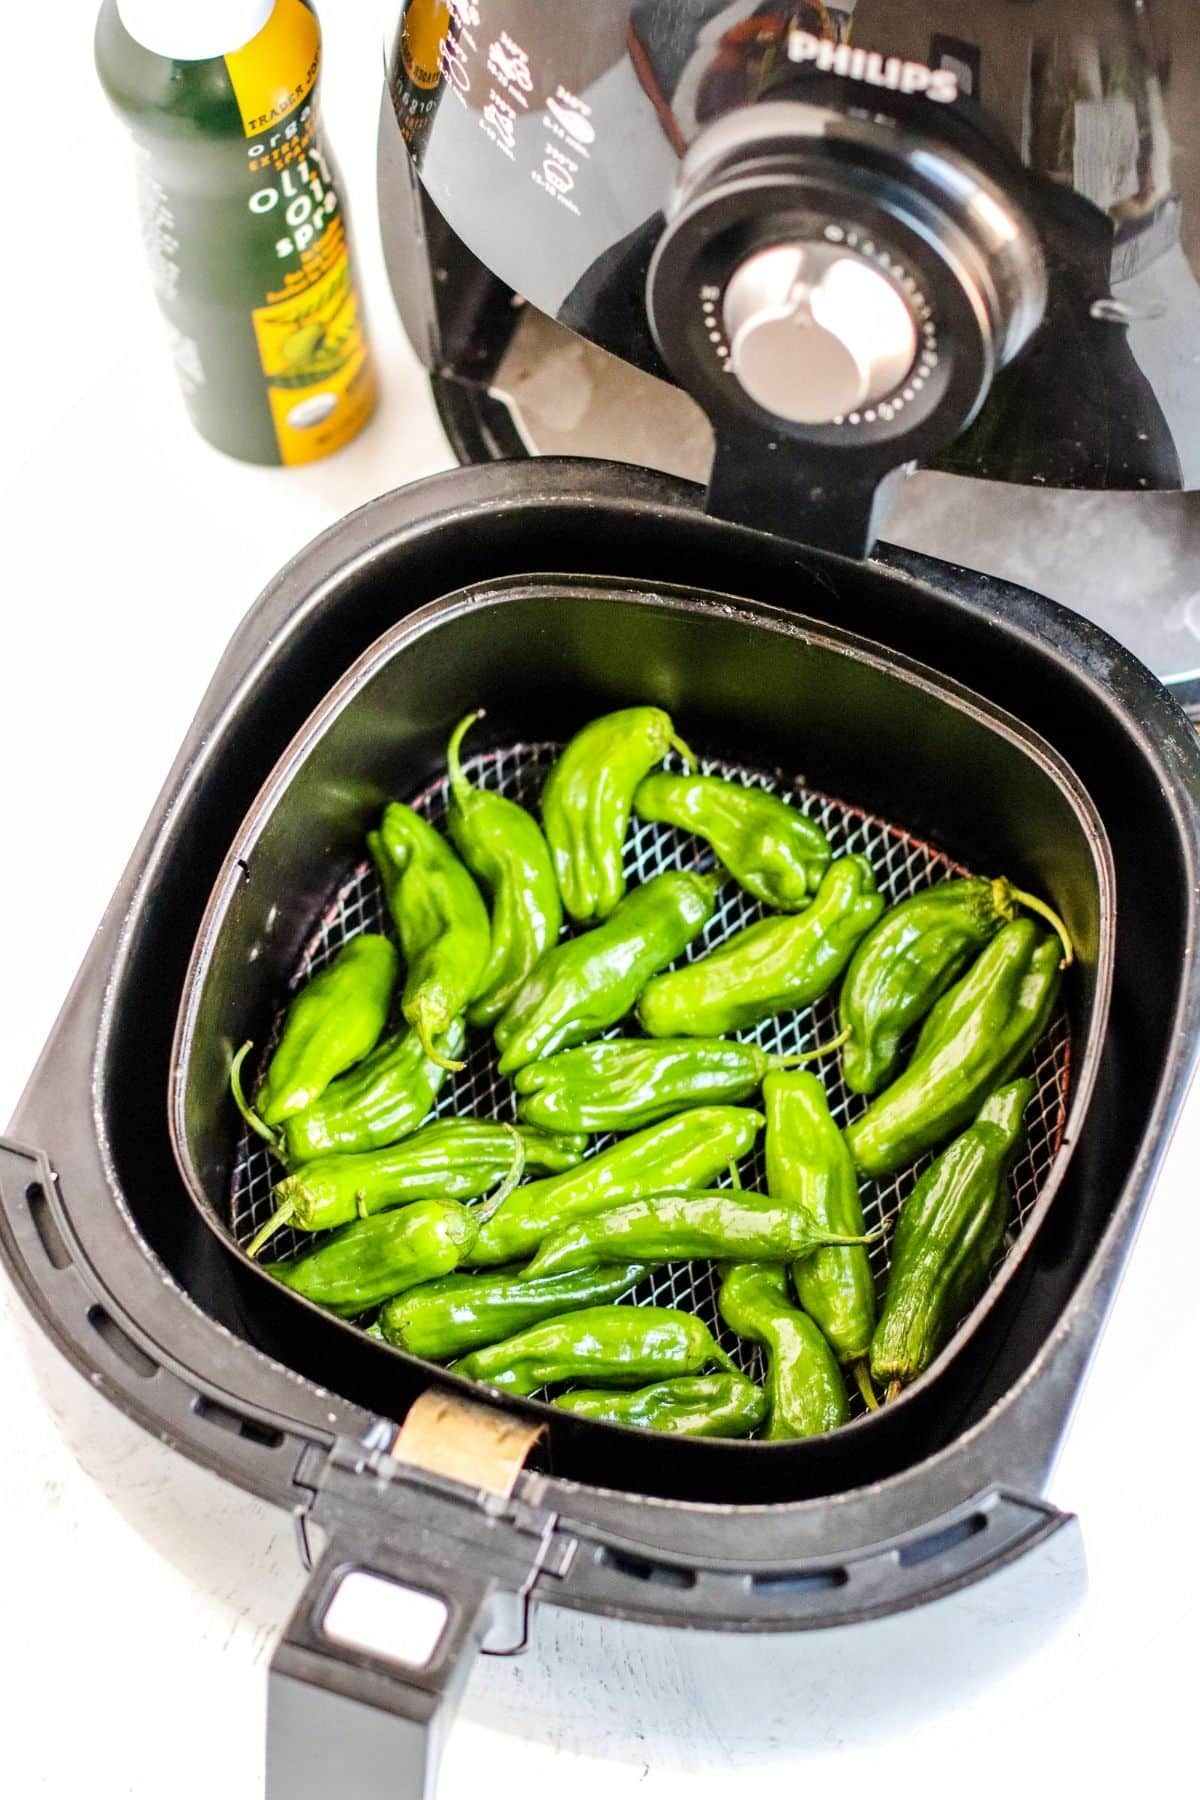 Pepper in an air fryer basket with bottle of olive oil spray next to it